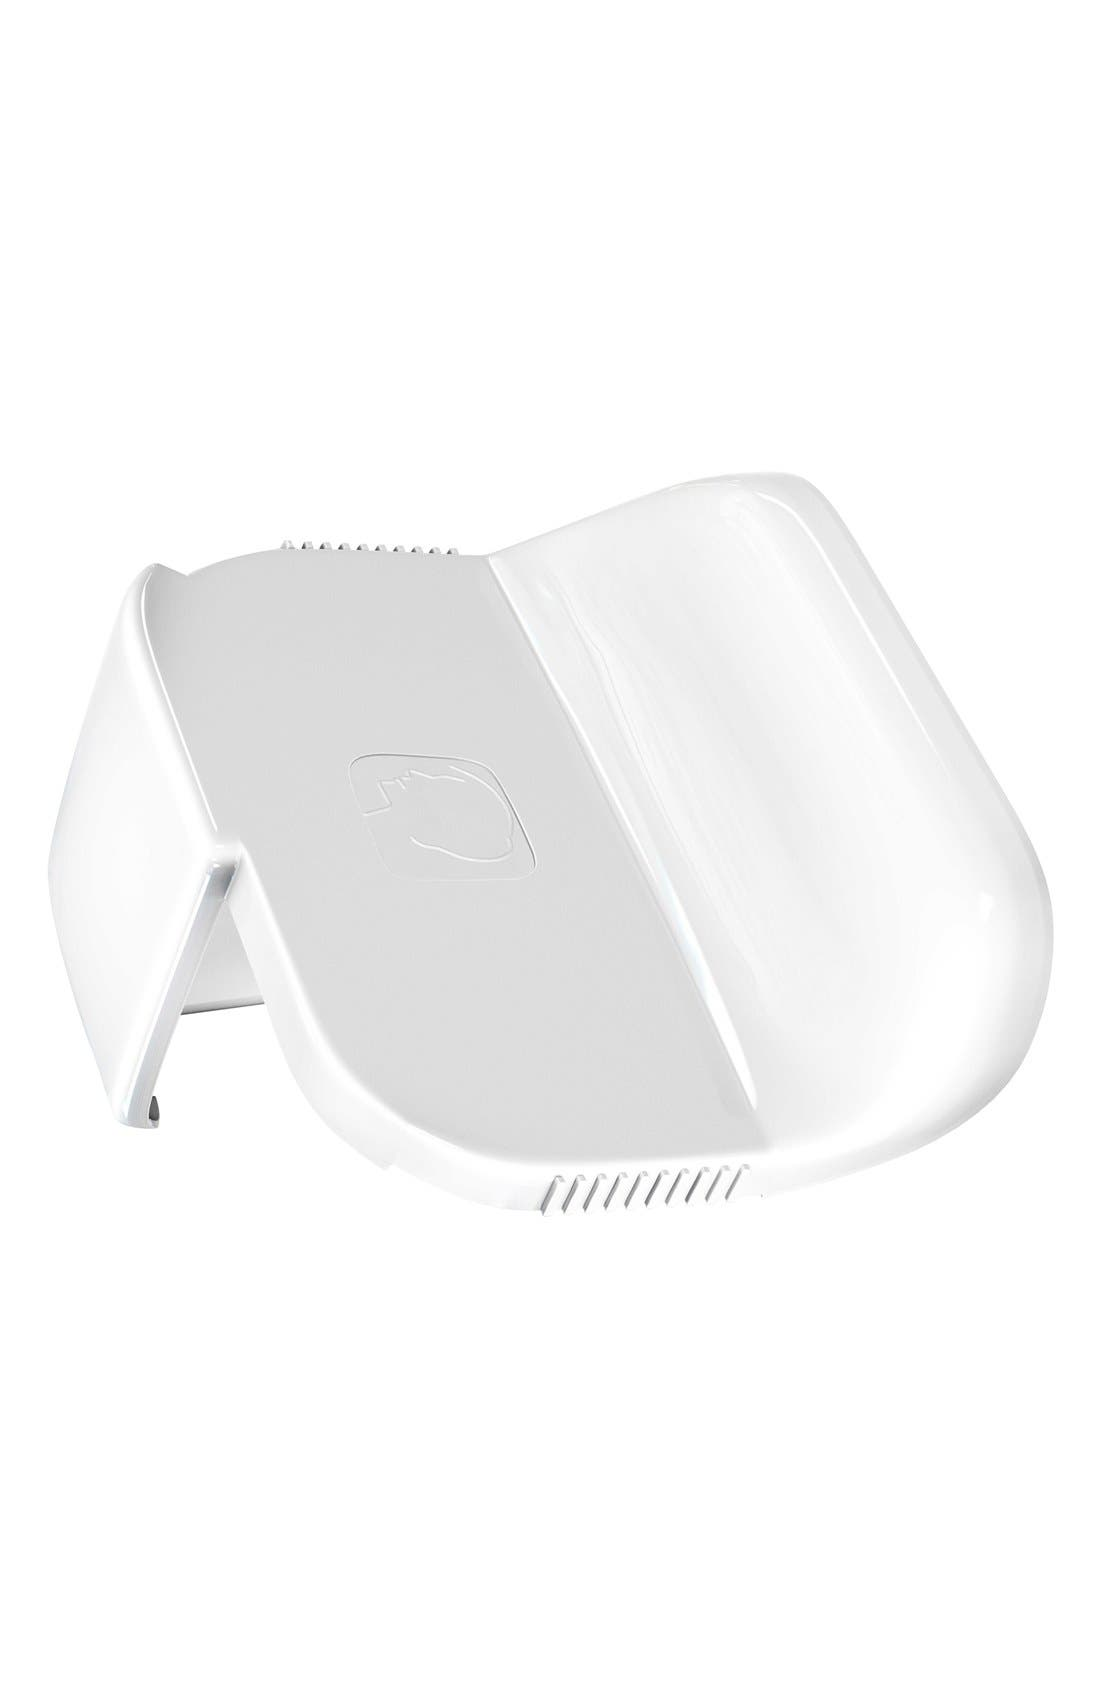 TOUCH Precision Adaptor,                             Main thumbnail 1, color,                             000